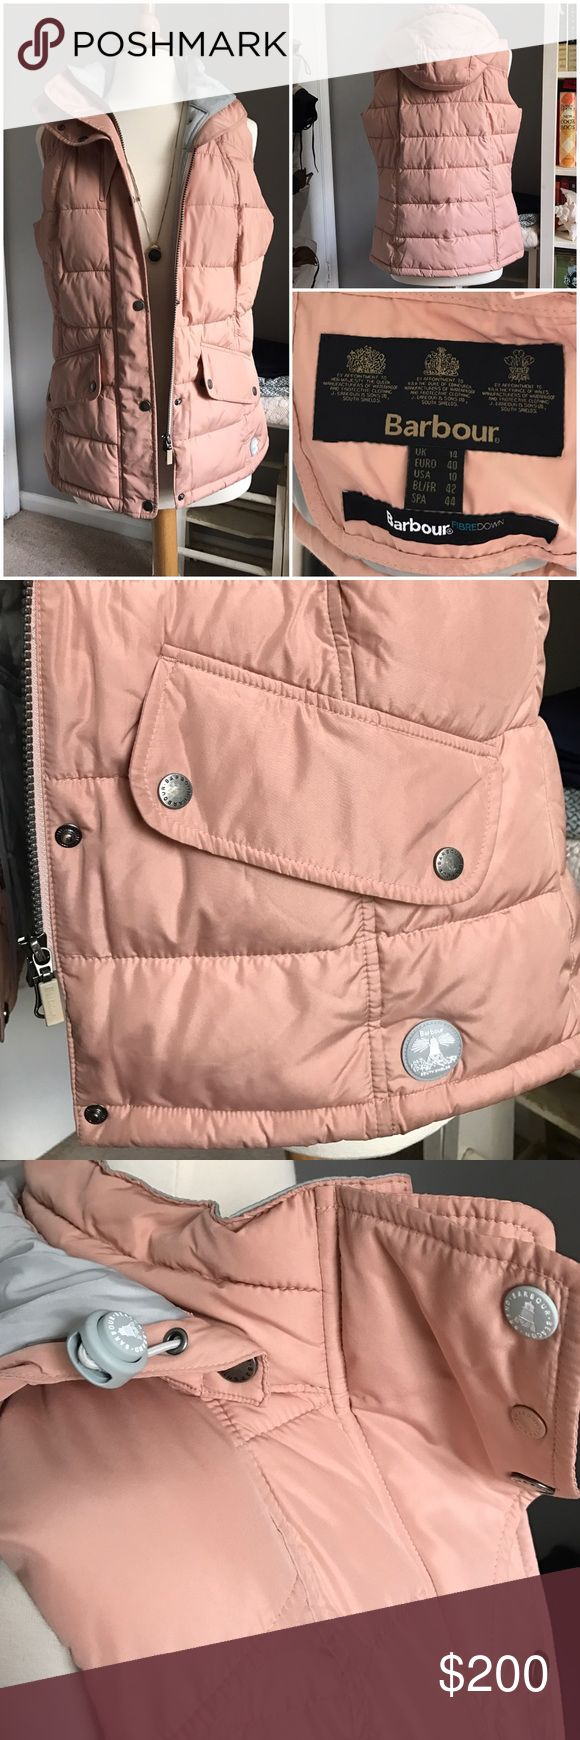 Barbour Down Blush Vest Detachable Hood Beautiful blush color Barbour Vest with Grey lining, perfect condition just a little too big, size 10 which is a medium but runs M/L Barbour Jackets & Coats Vests